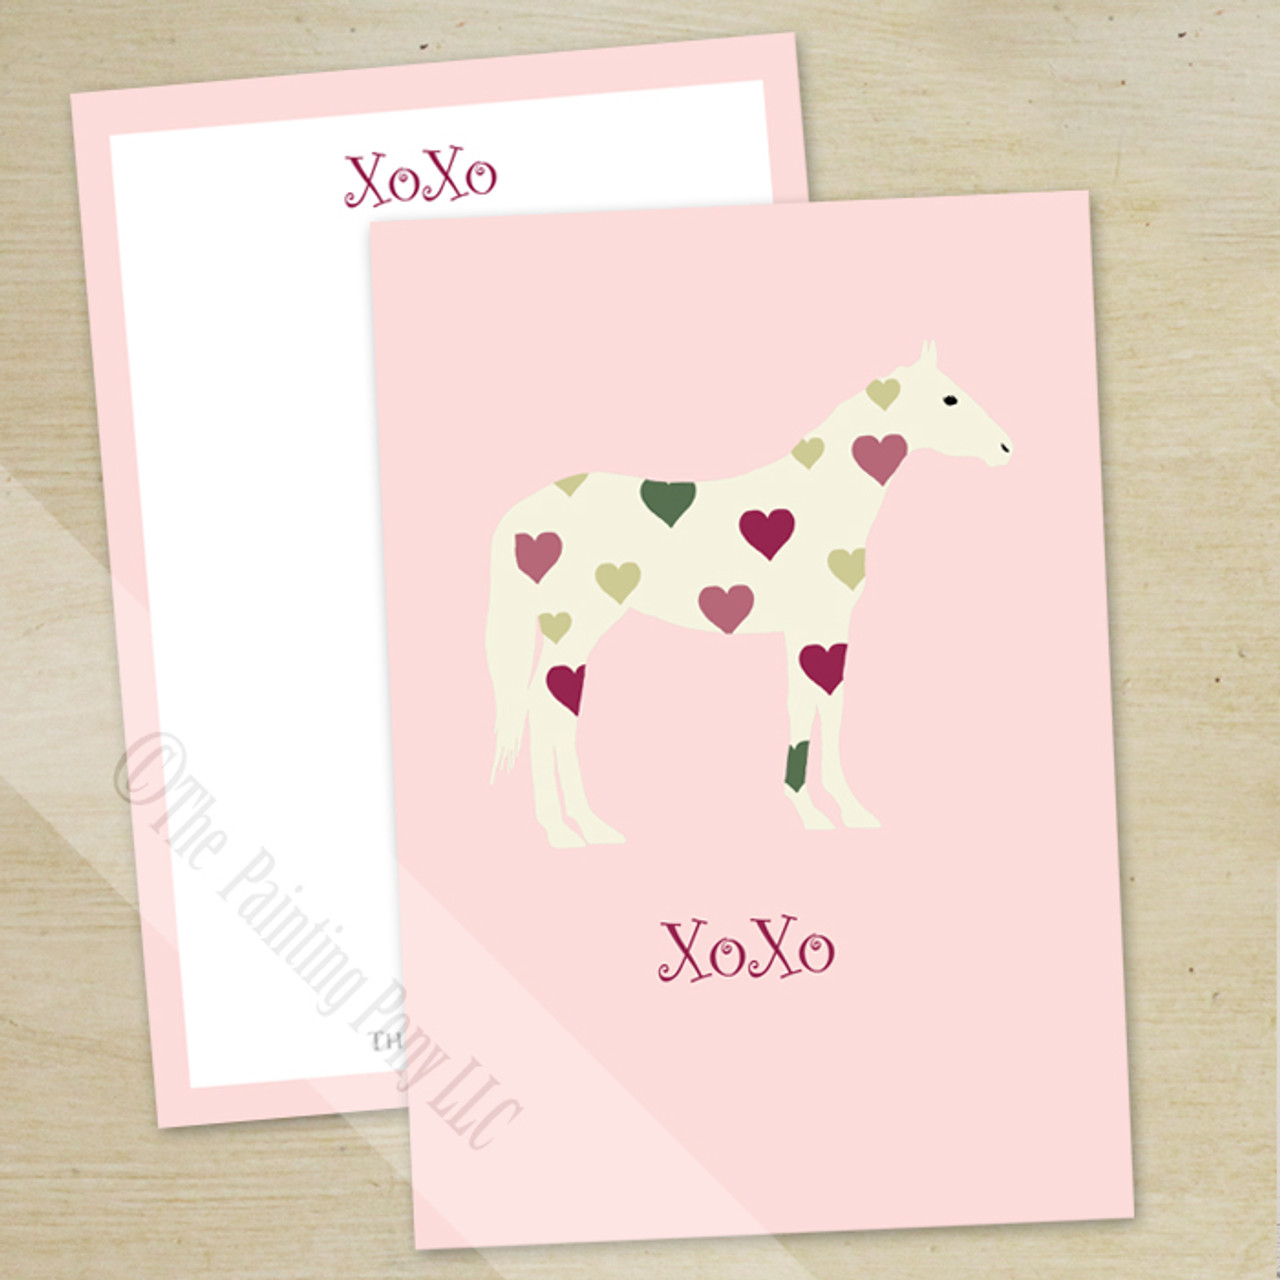 Hugs and kisses heart pony valentines day flat cards 10 pk the hugs and kisses heart pony valentines day flat cards 10 m4hsunfo